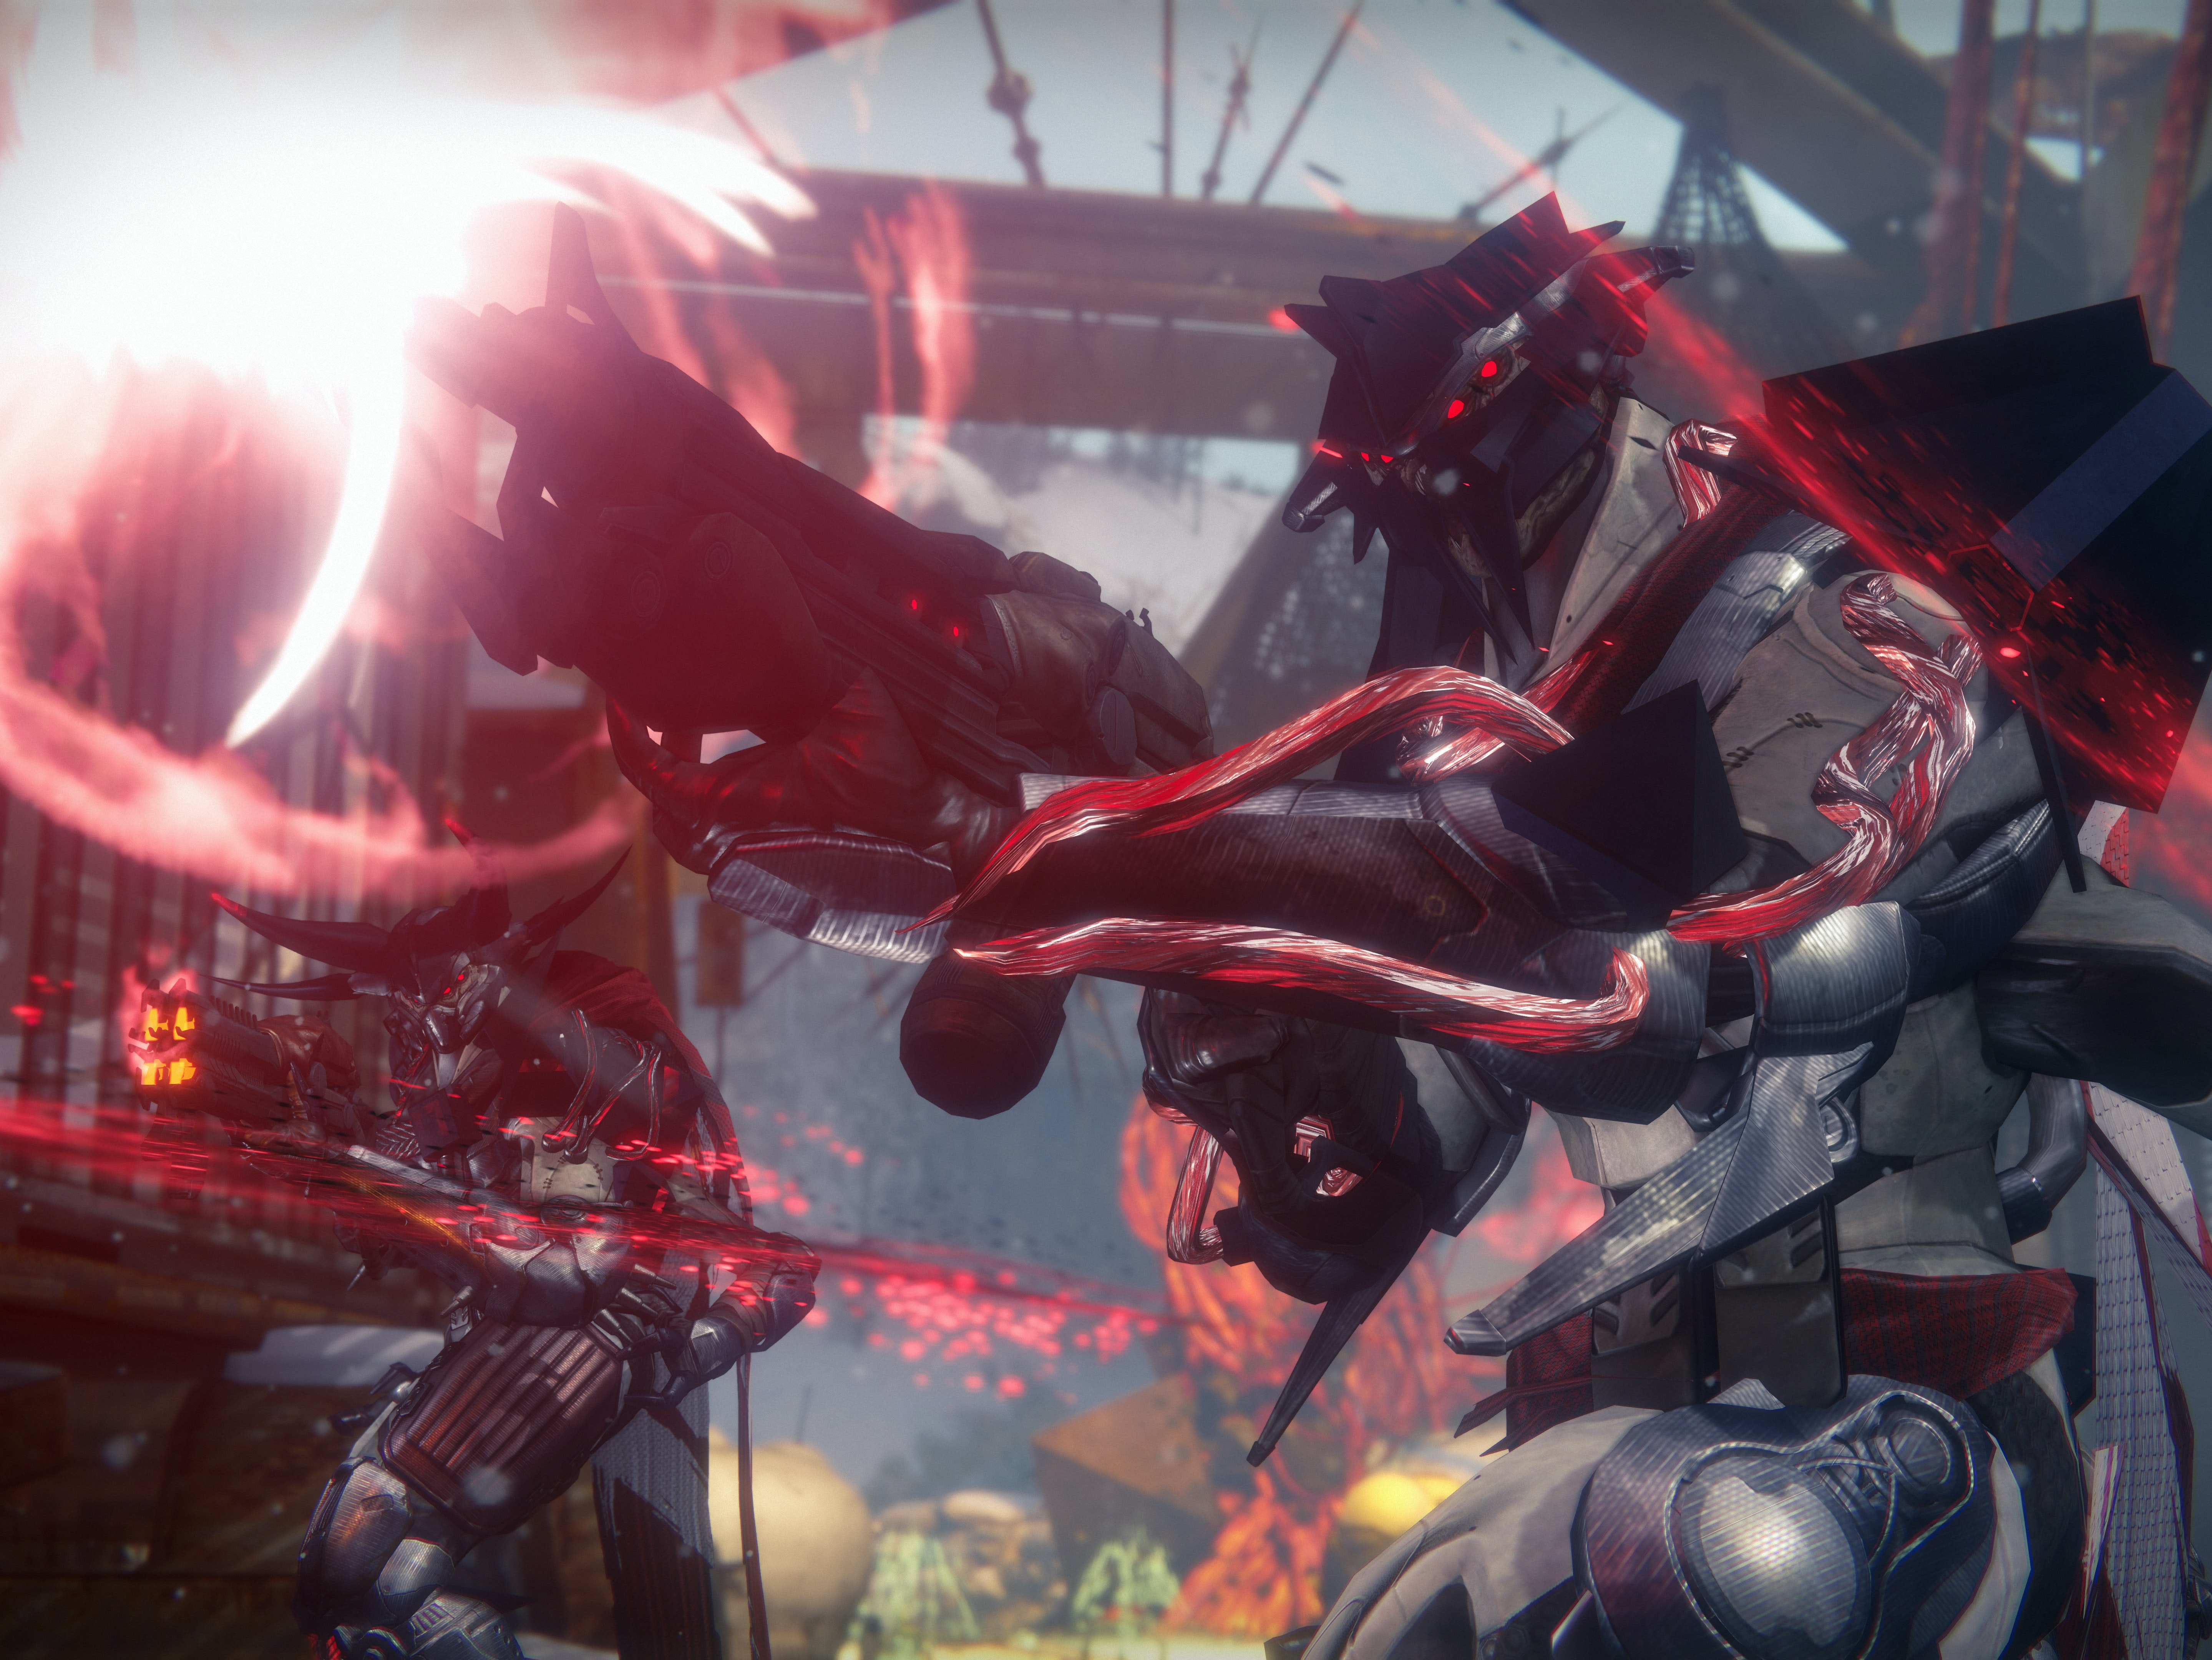 The Fallen use a nanotechnology called SIVA to enhance their weapons and armor.